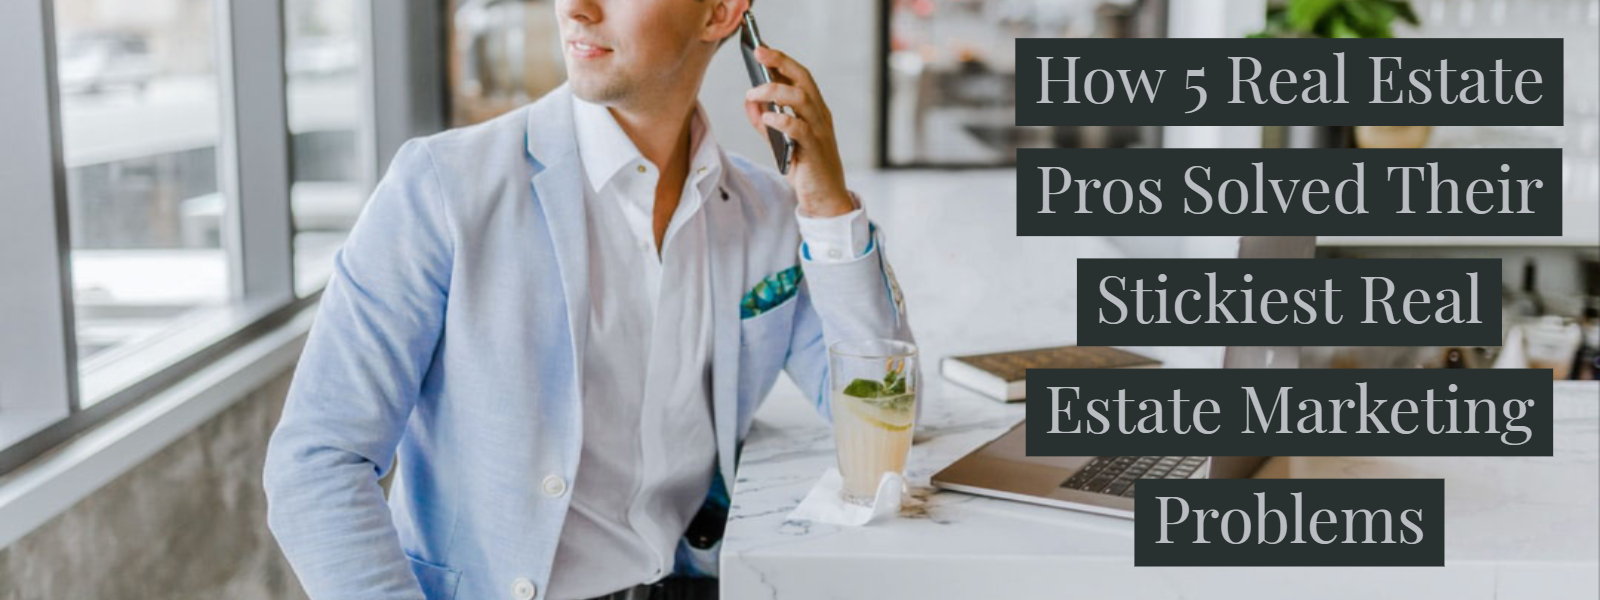 How 5 Real Estate Pros Solved Their Stickiest Real Estate Marketing Problems